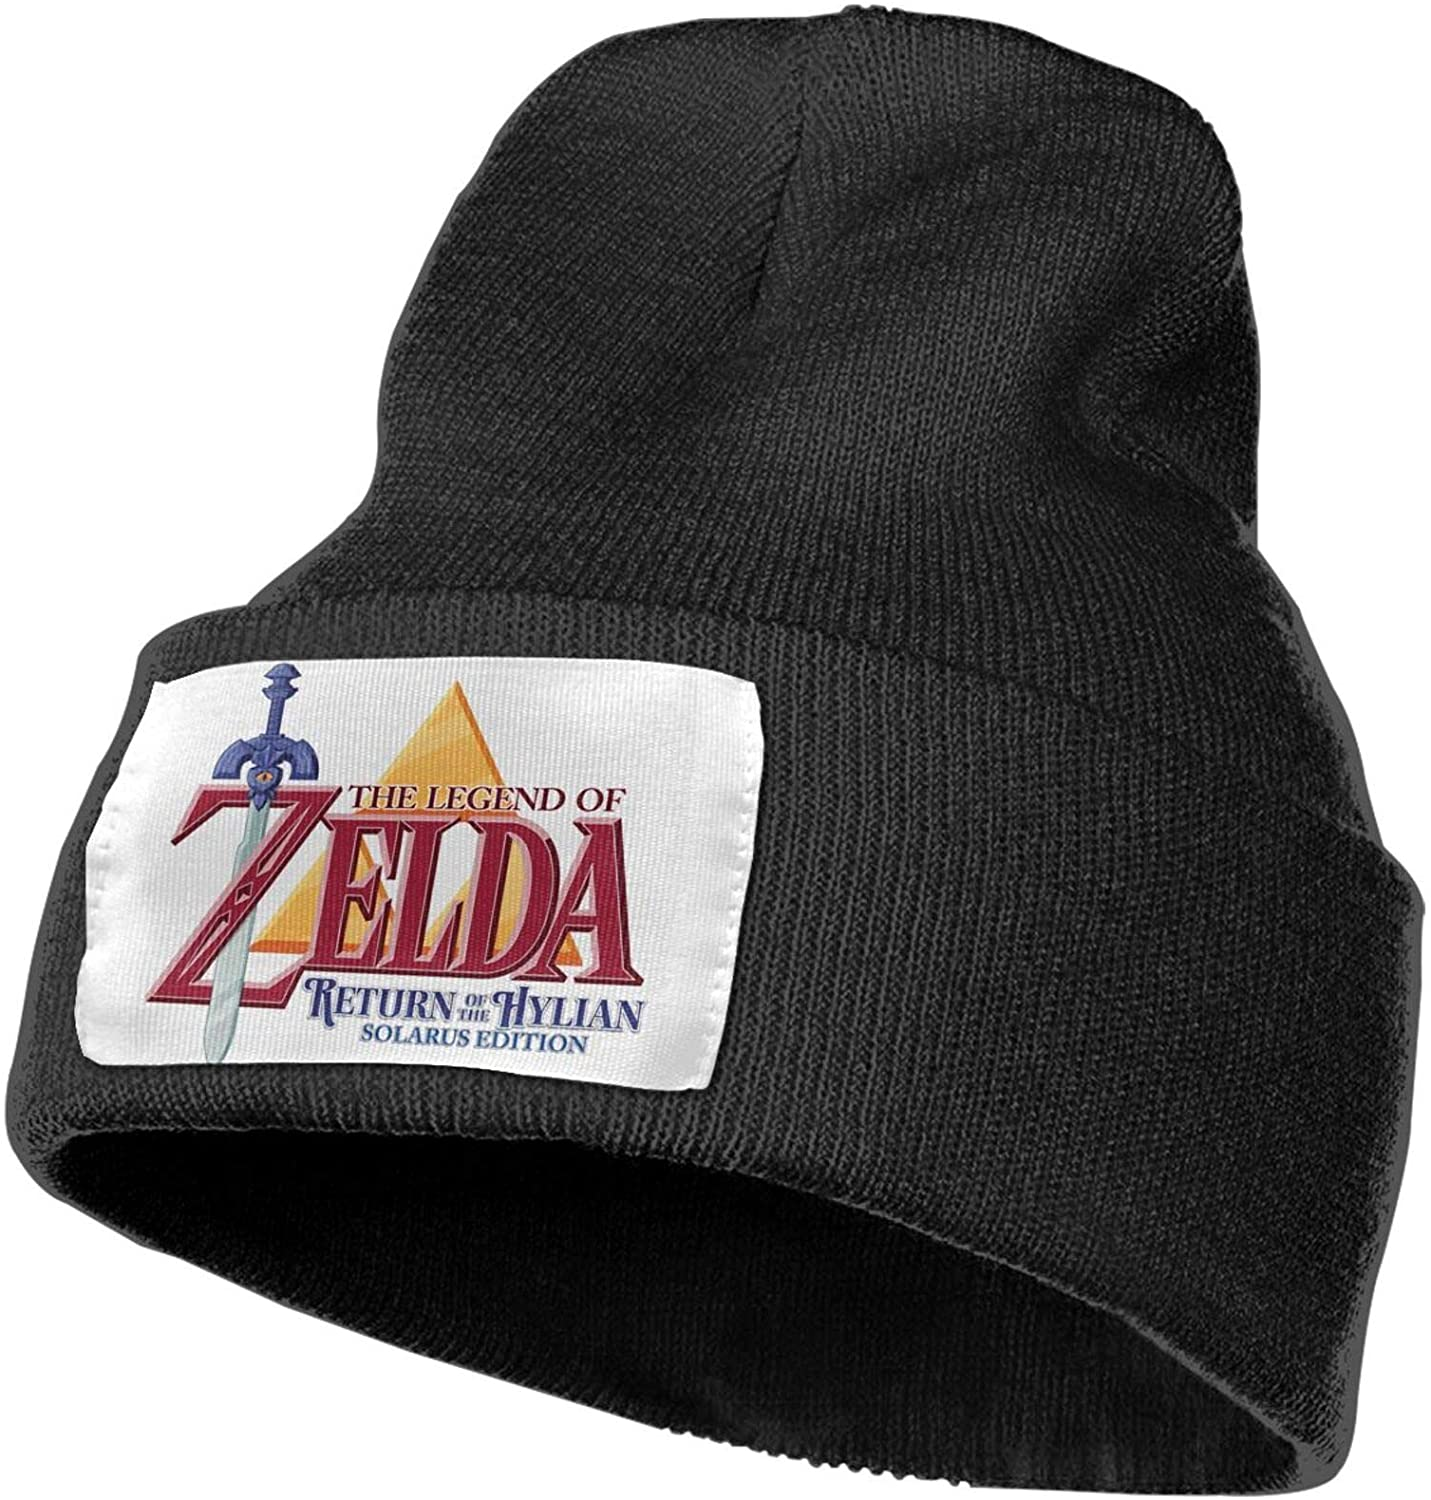 Guoguoding The Legend of Zelda Knitting Hat Beanie Cap Warm Winter Unisex